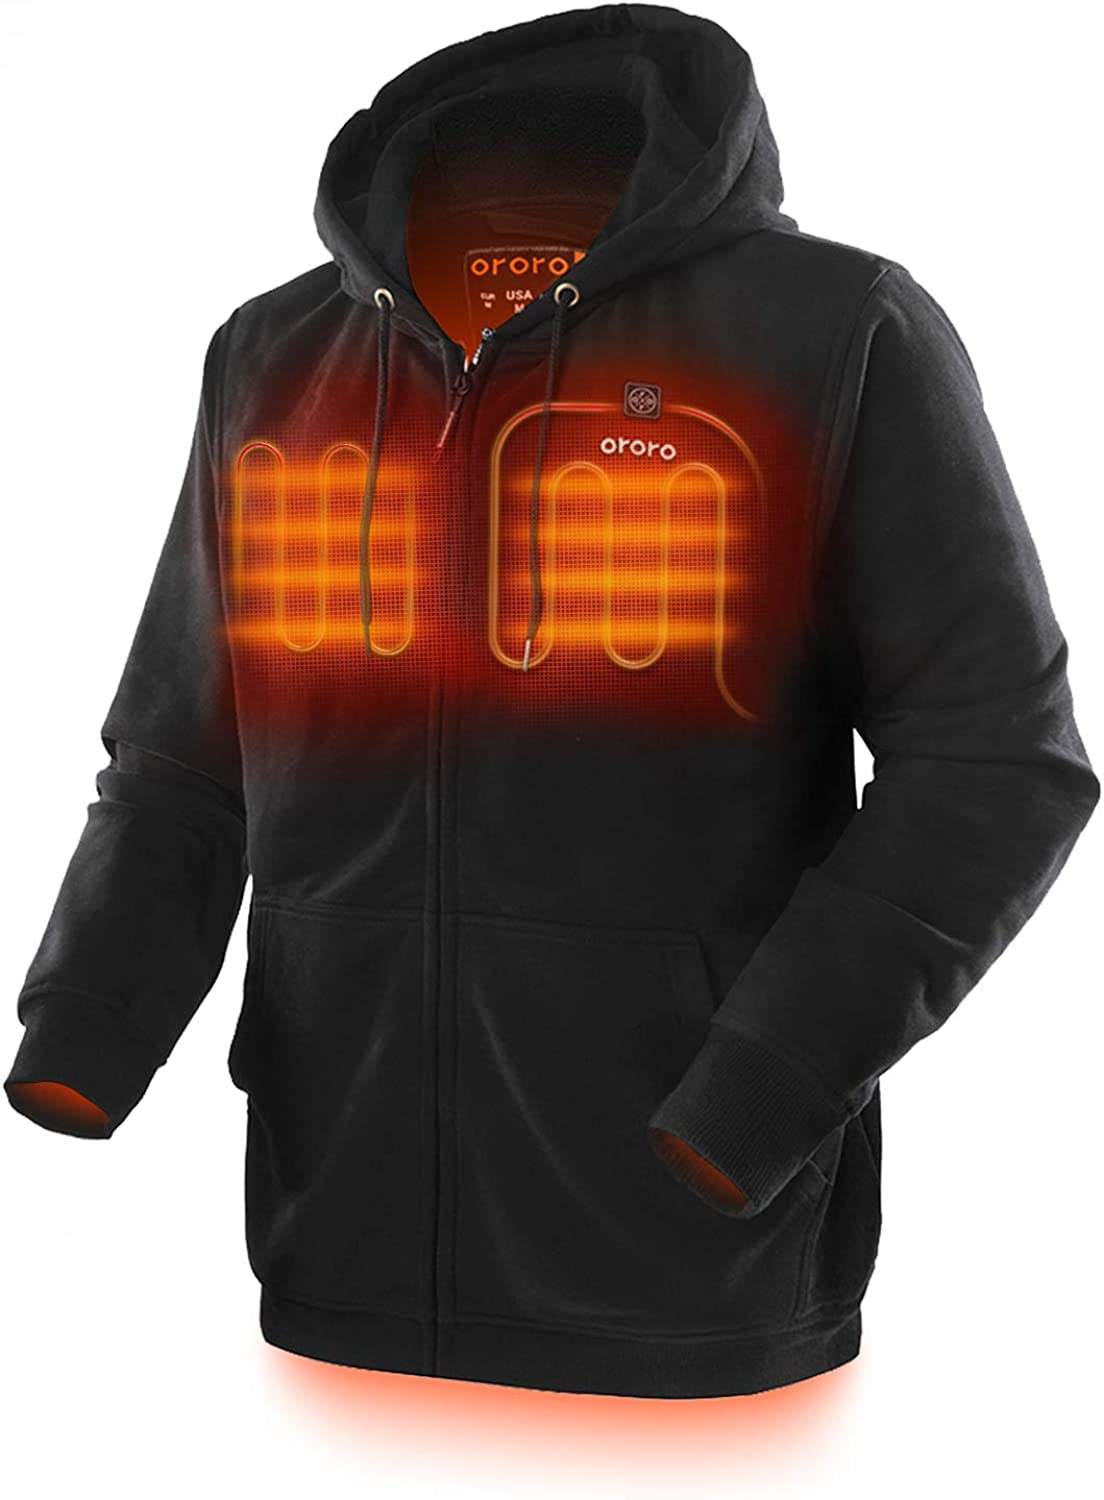 ORORO Heated Hoodie with Battery Pack (Unisex) 61d4mv1NDrL